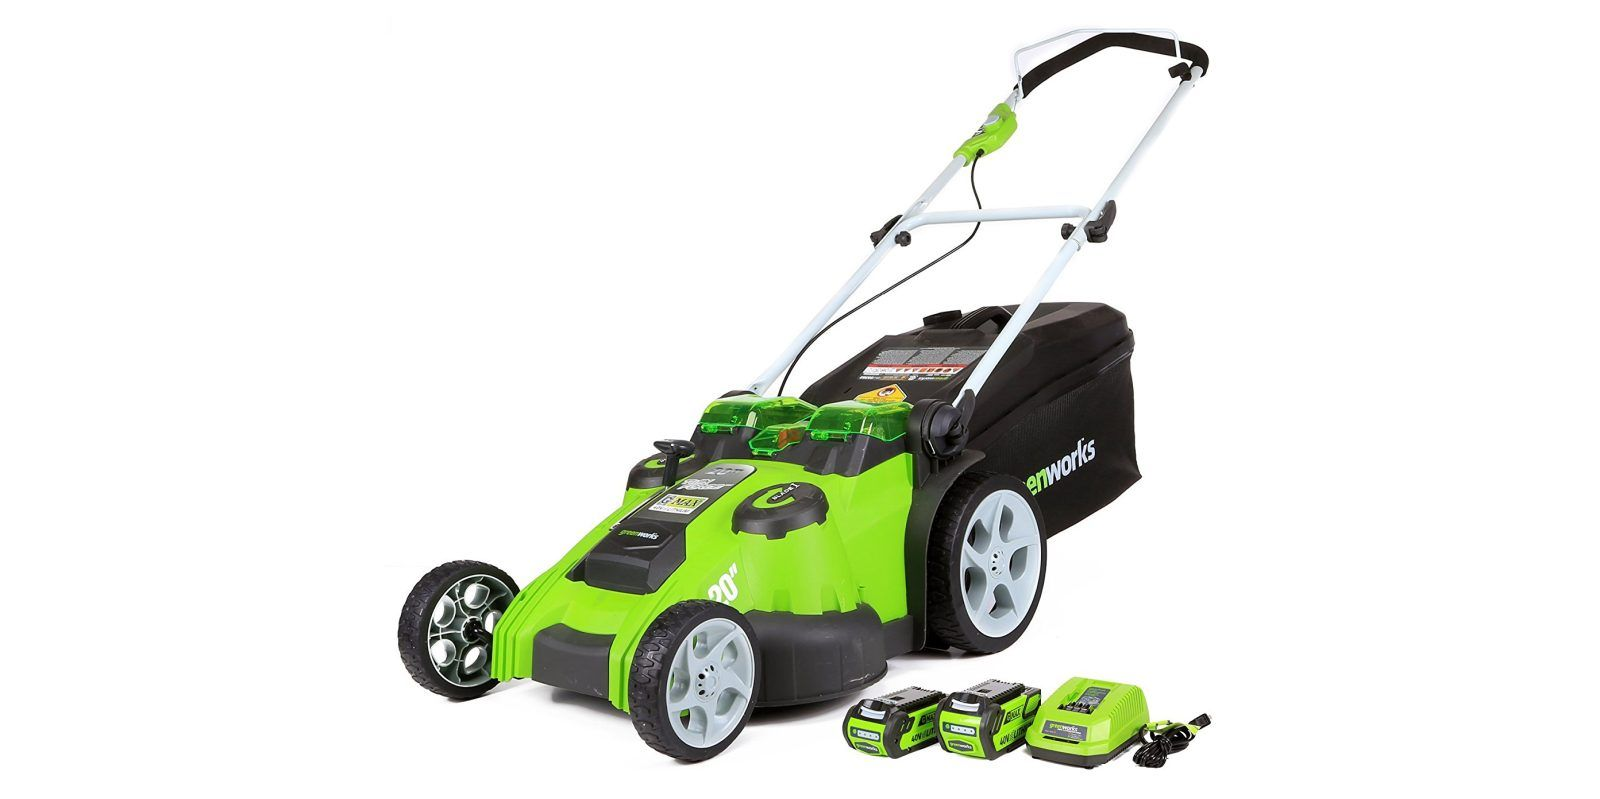 Green Deals Greenworks 40v Electric Lawn Mower Is A 1 Best Seller At 226 More Cordless Lawn Mower Push Lawn Mower Lawn Mower